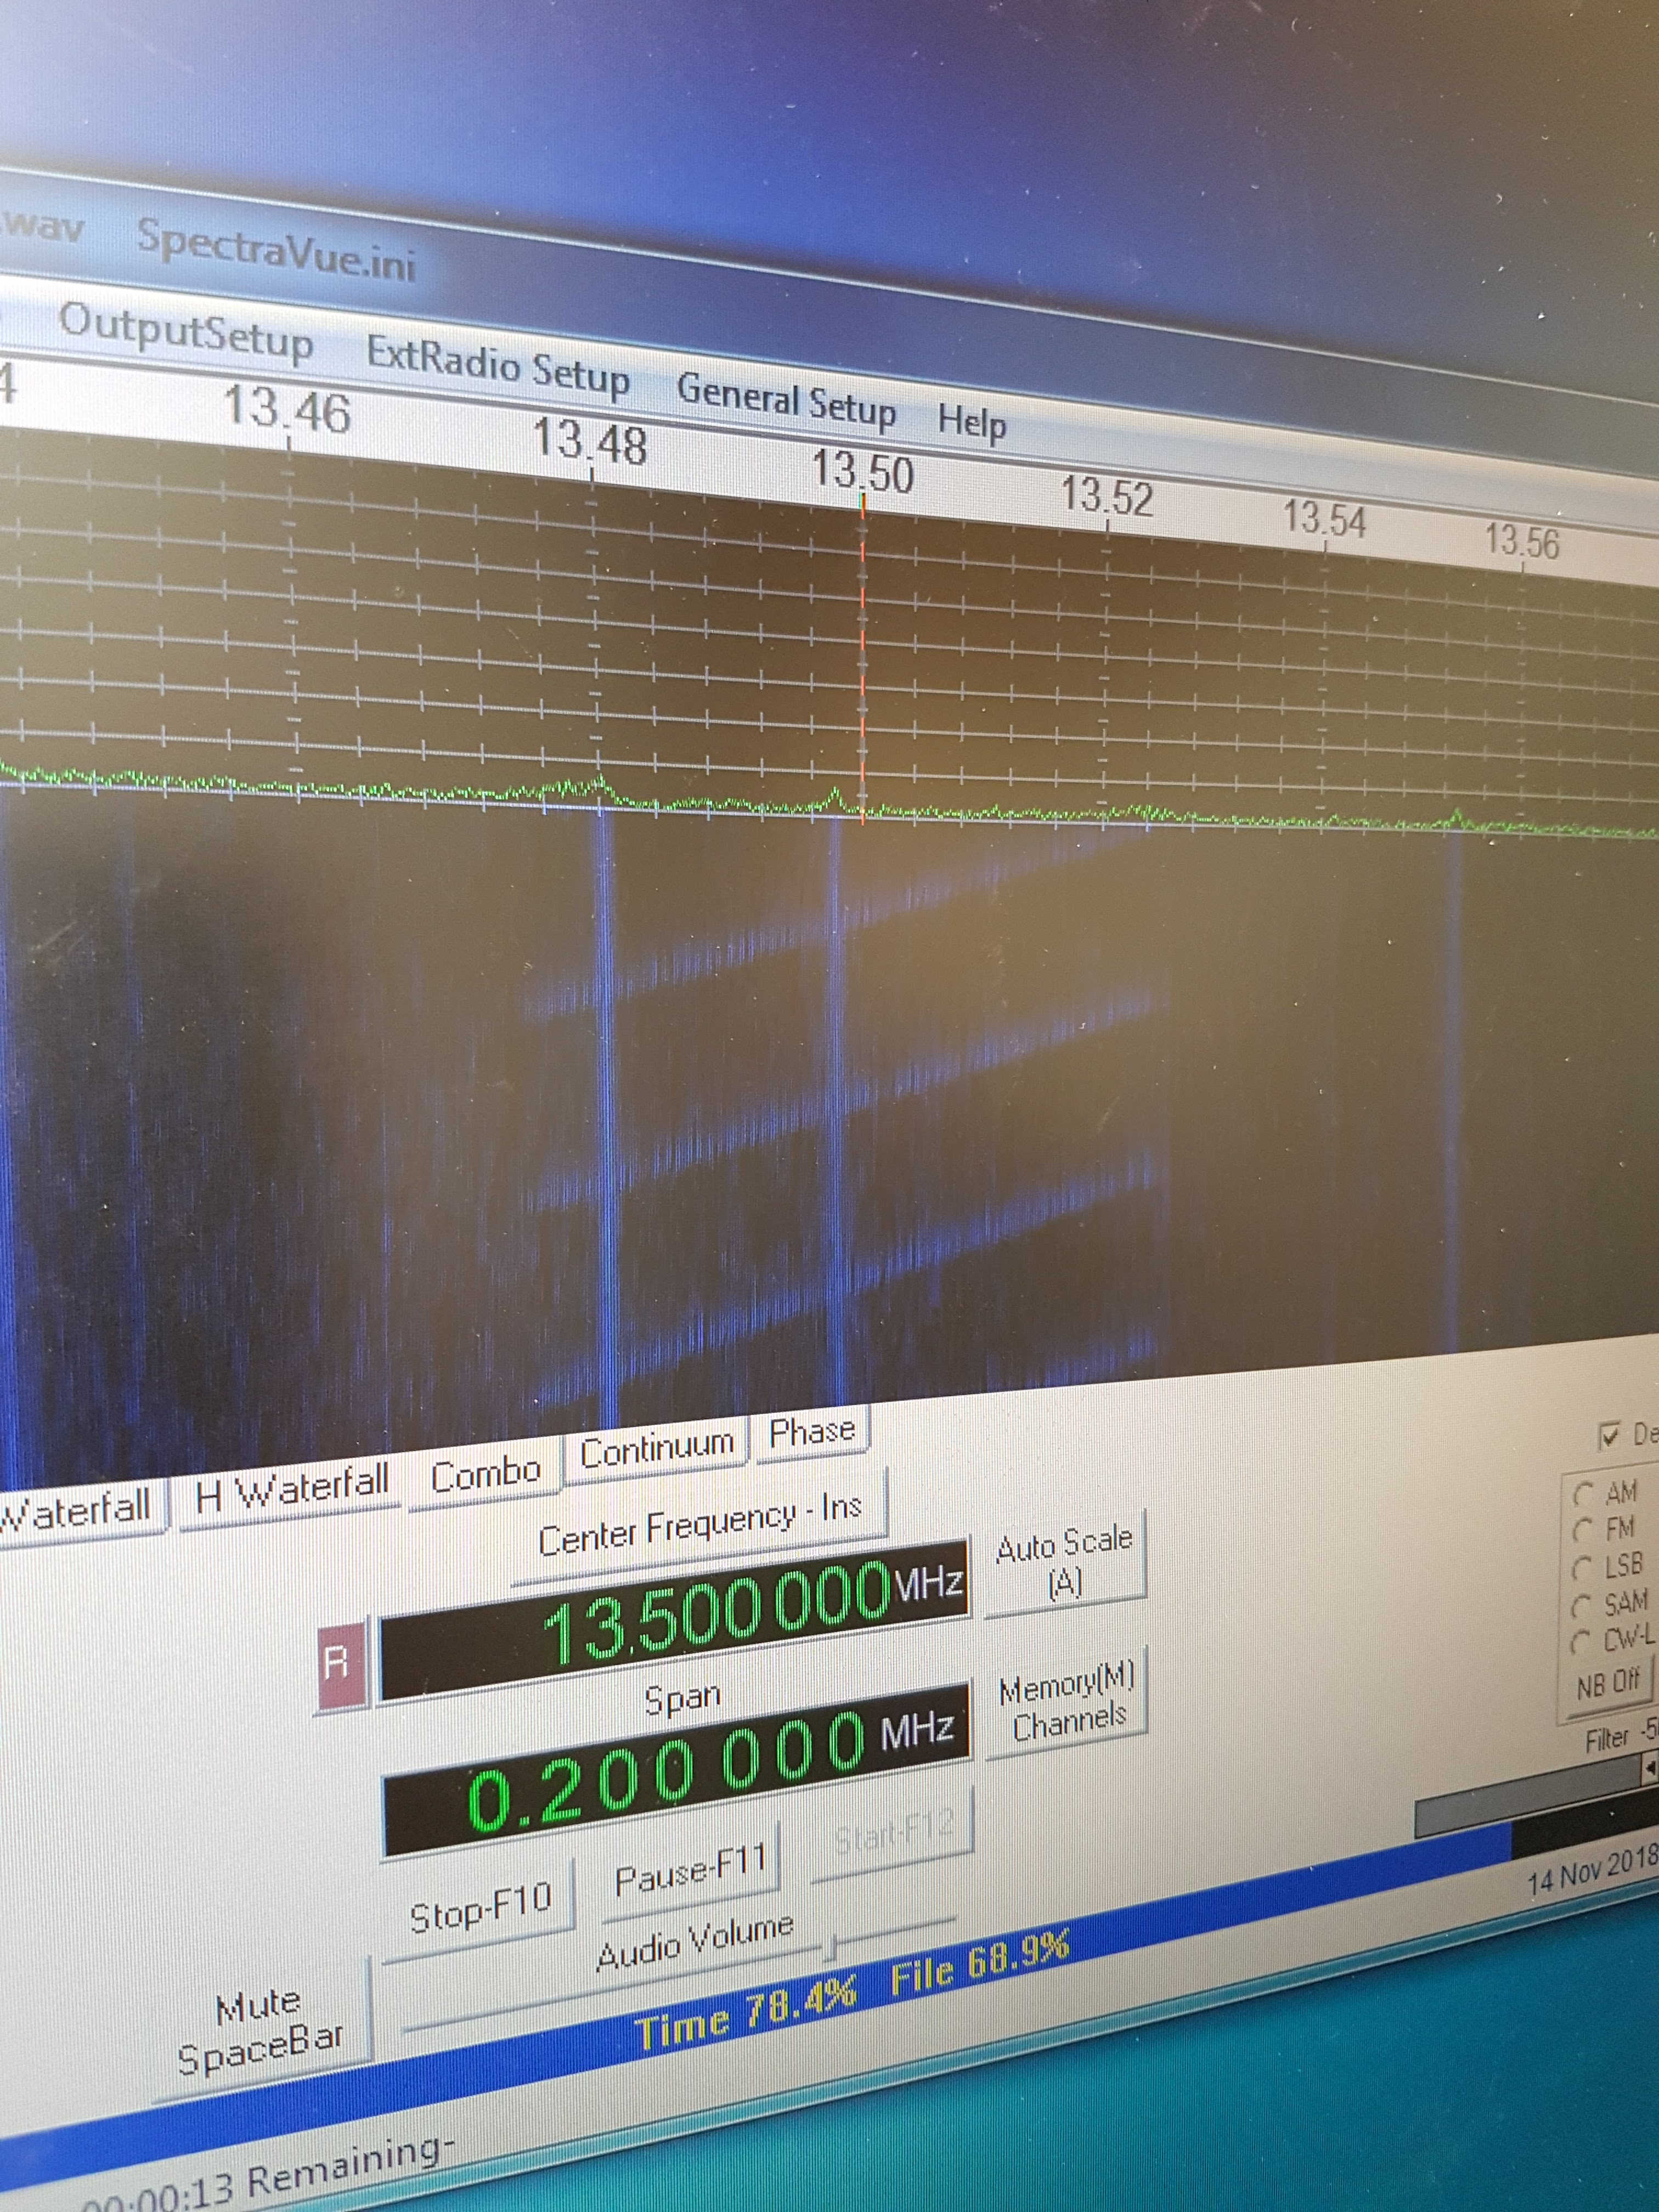 Radio Frequency Interference test in progress